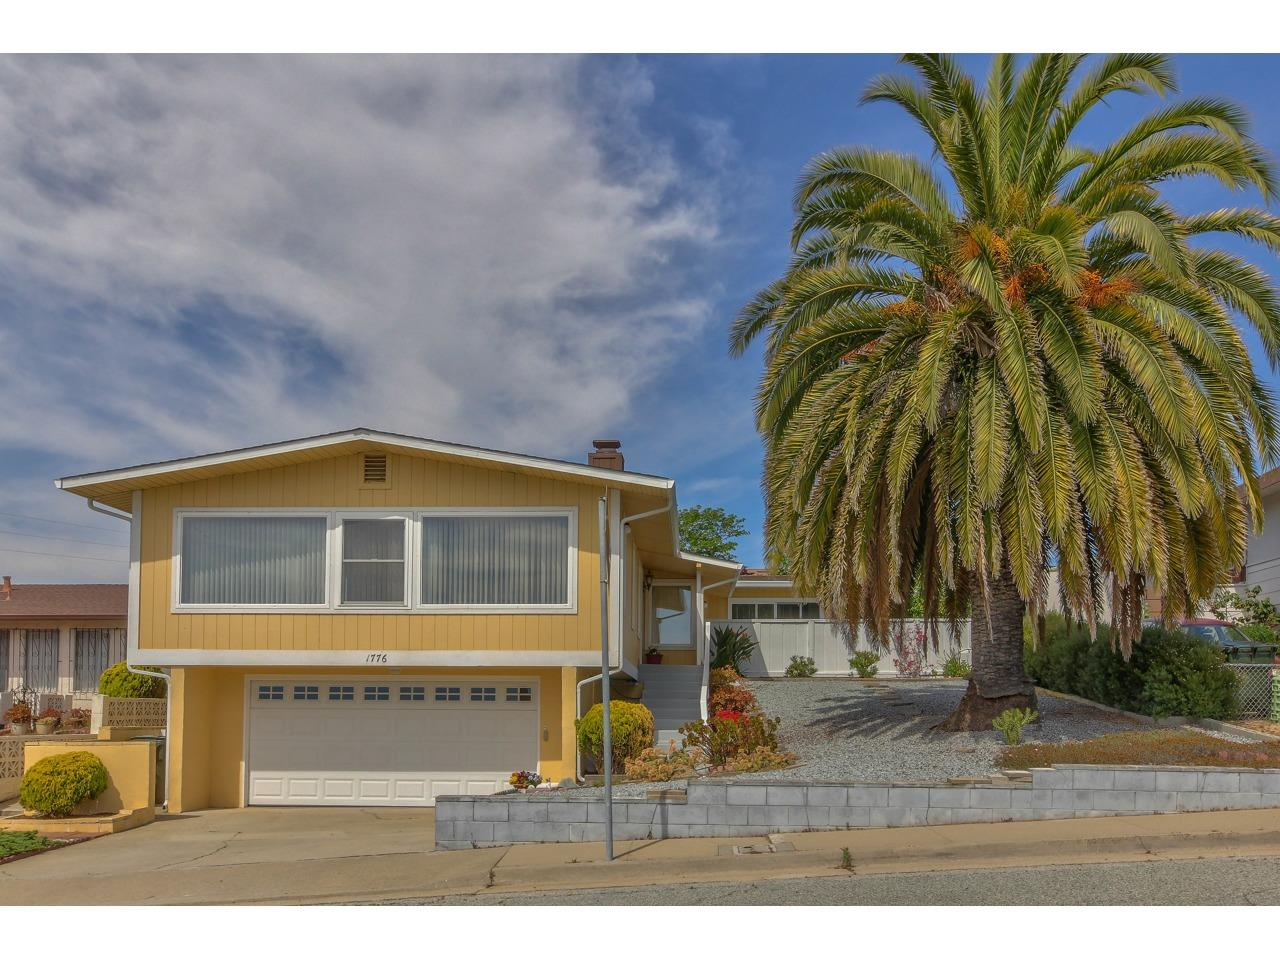 Photo of 1776 Mescal ST, SEASIDE, CA 93955